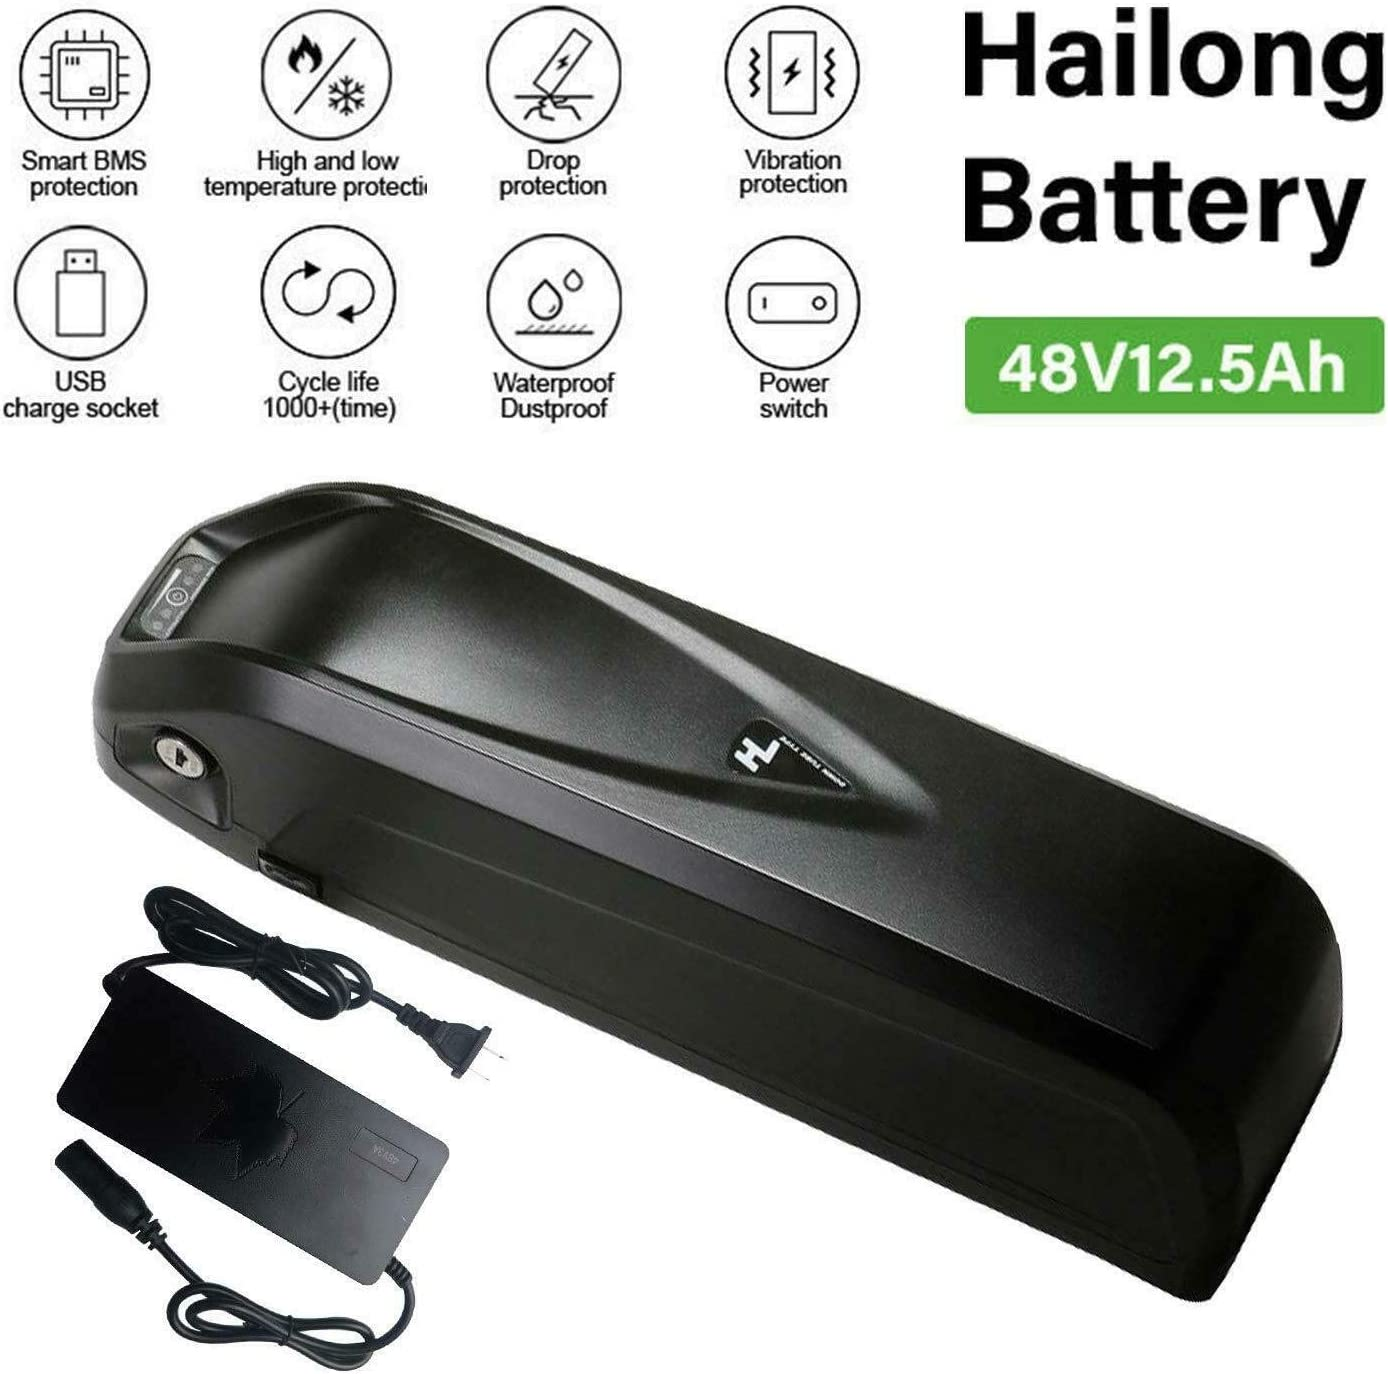 YiiYYaa 48V 12.5Ah HaiLong Ebike Battery Downtube Lithium Battery with USB Port, Electric Bike Battery for 500 750 1000W Motor